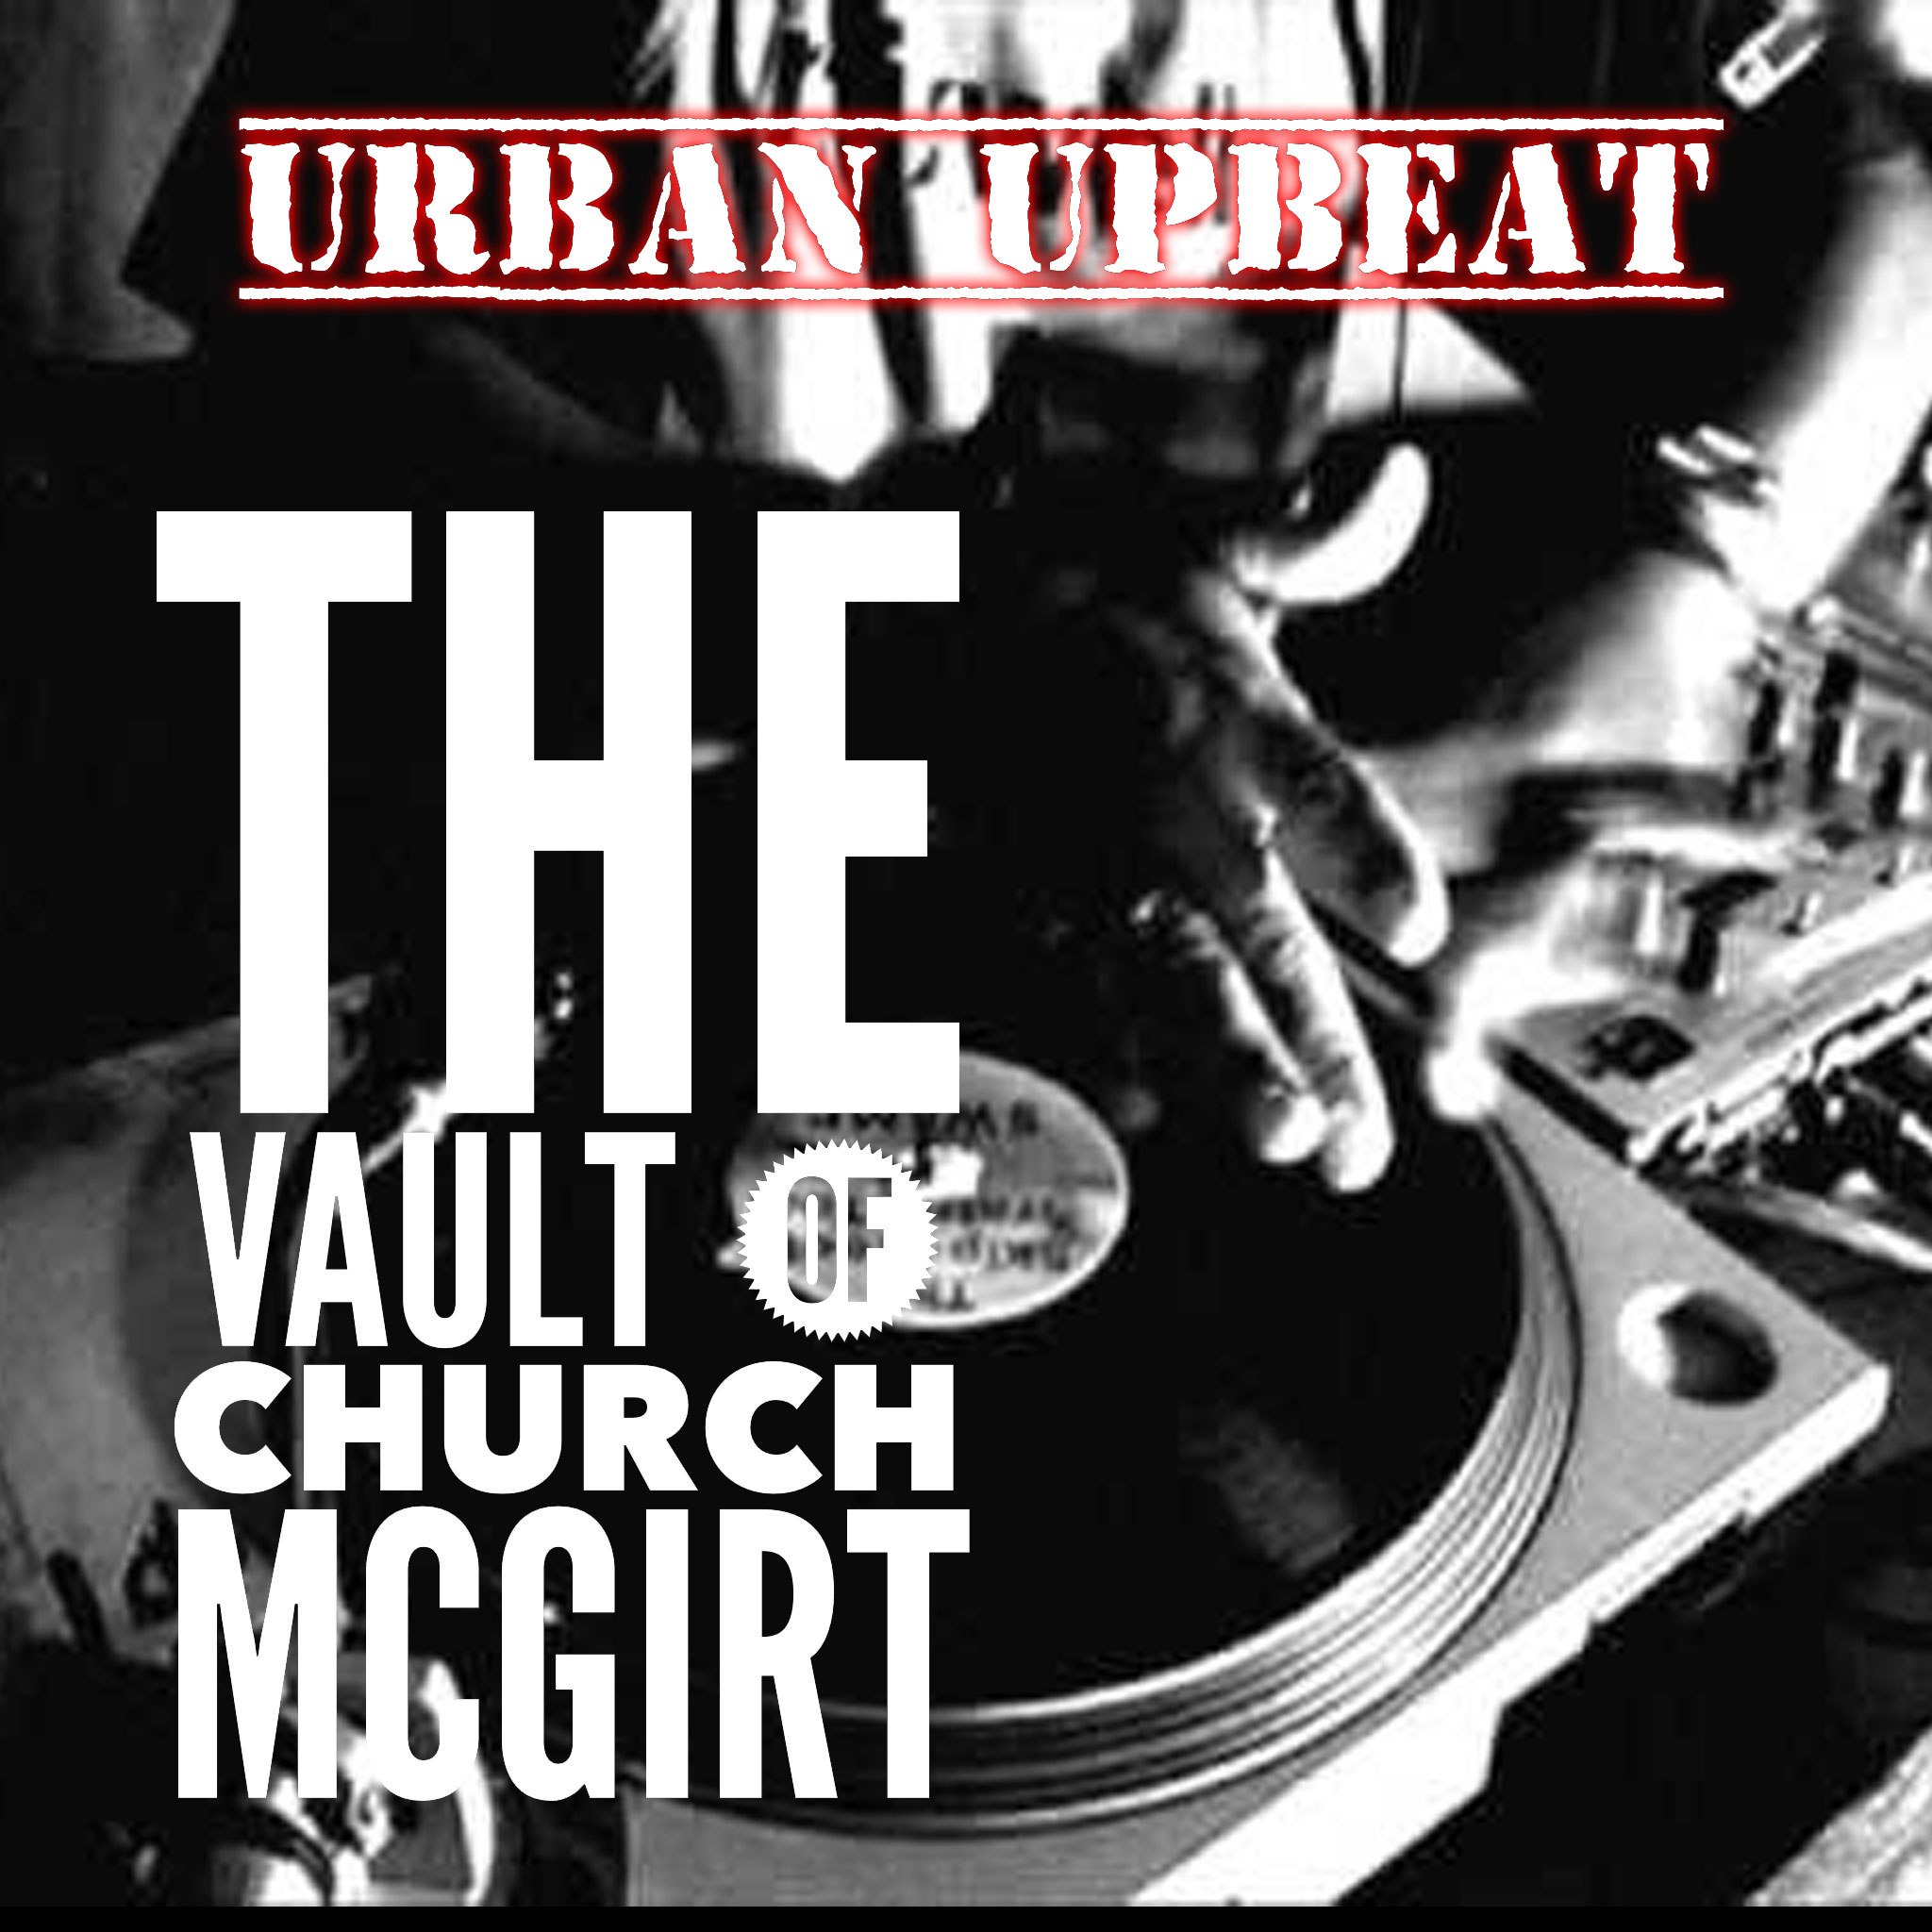 Church-Mcgirt-urban-upbeat